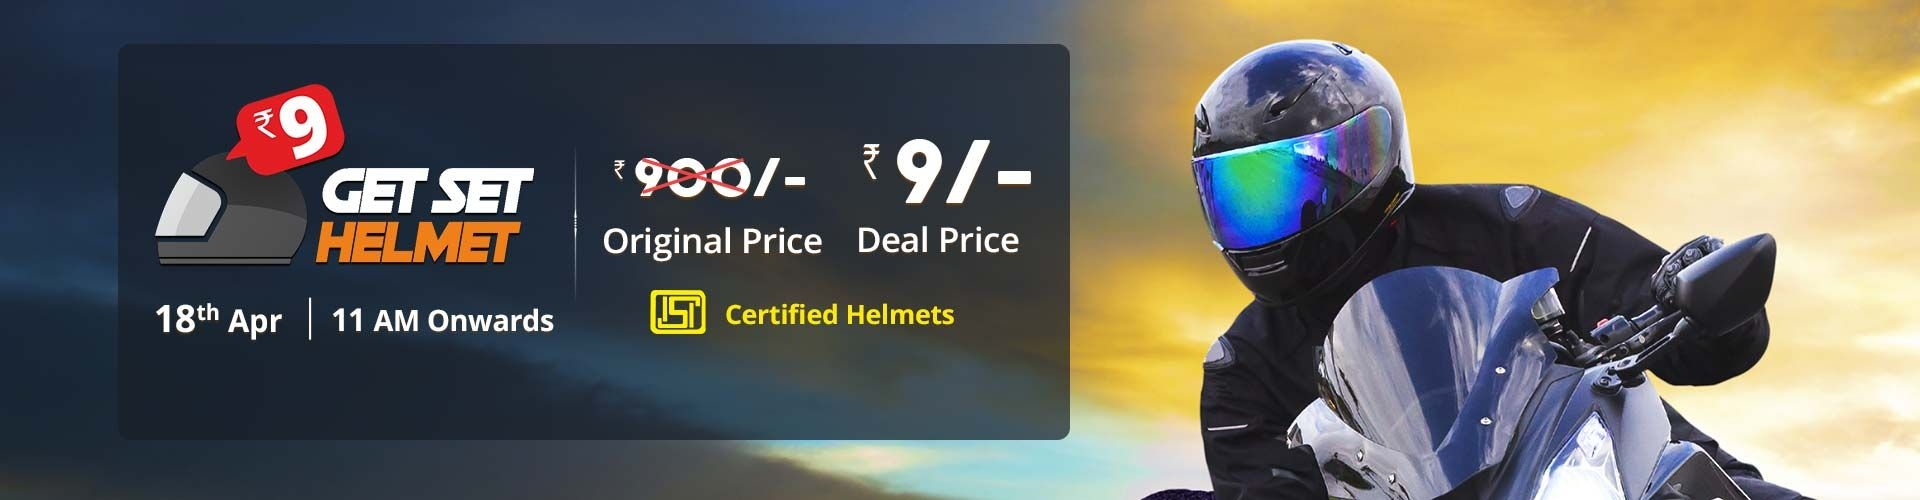 Get Set Helmet | Remind Me Option | Droom